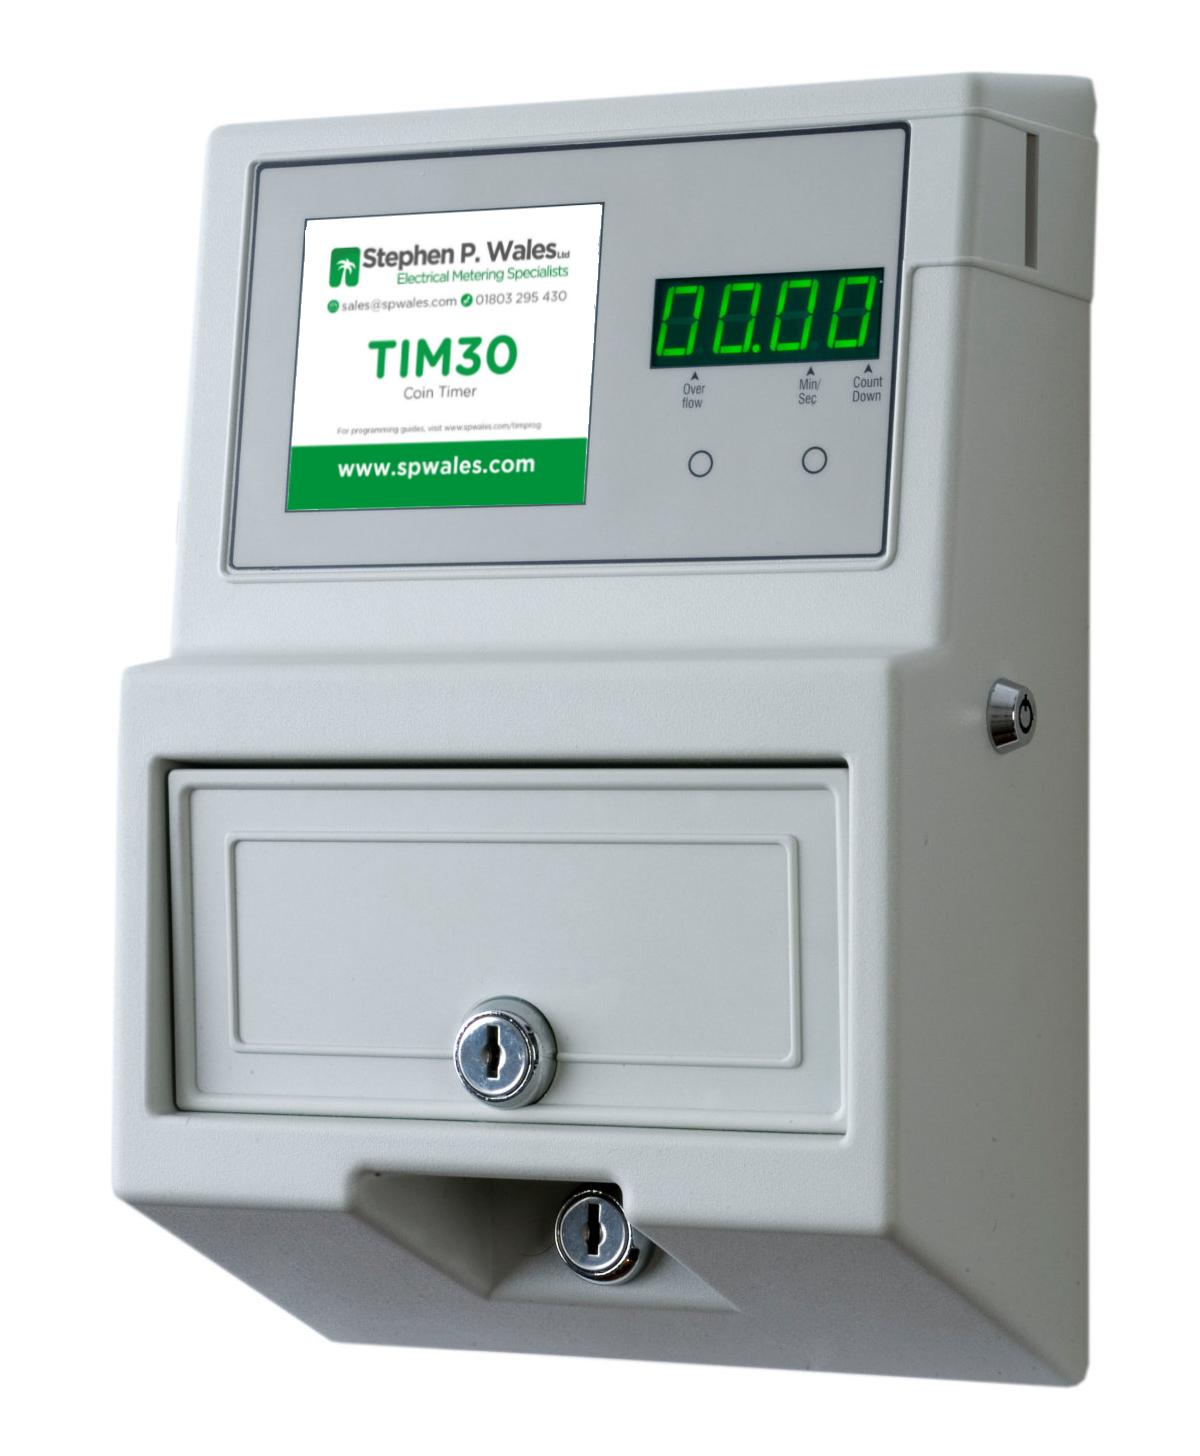 TIM30 Coin / Token Meter